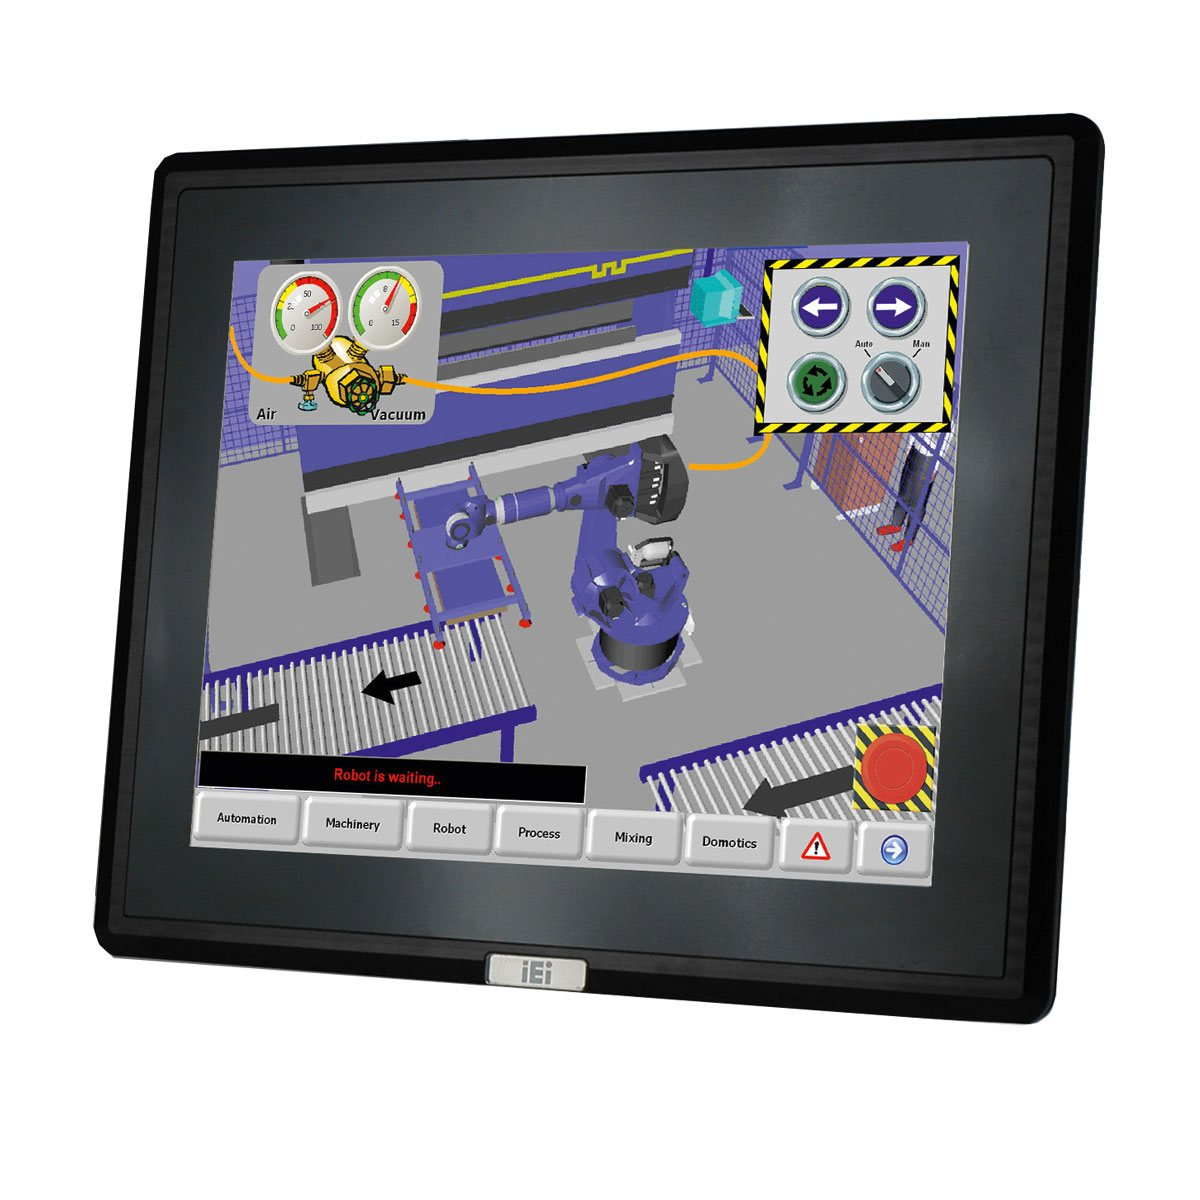 DM-F08A-R-R10-Panel-Monitor buy online at ICPDAS-EUROPE